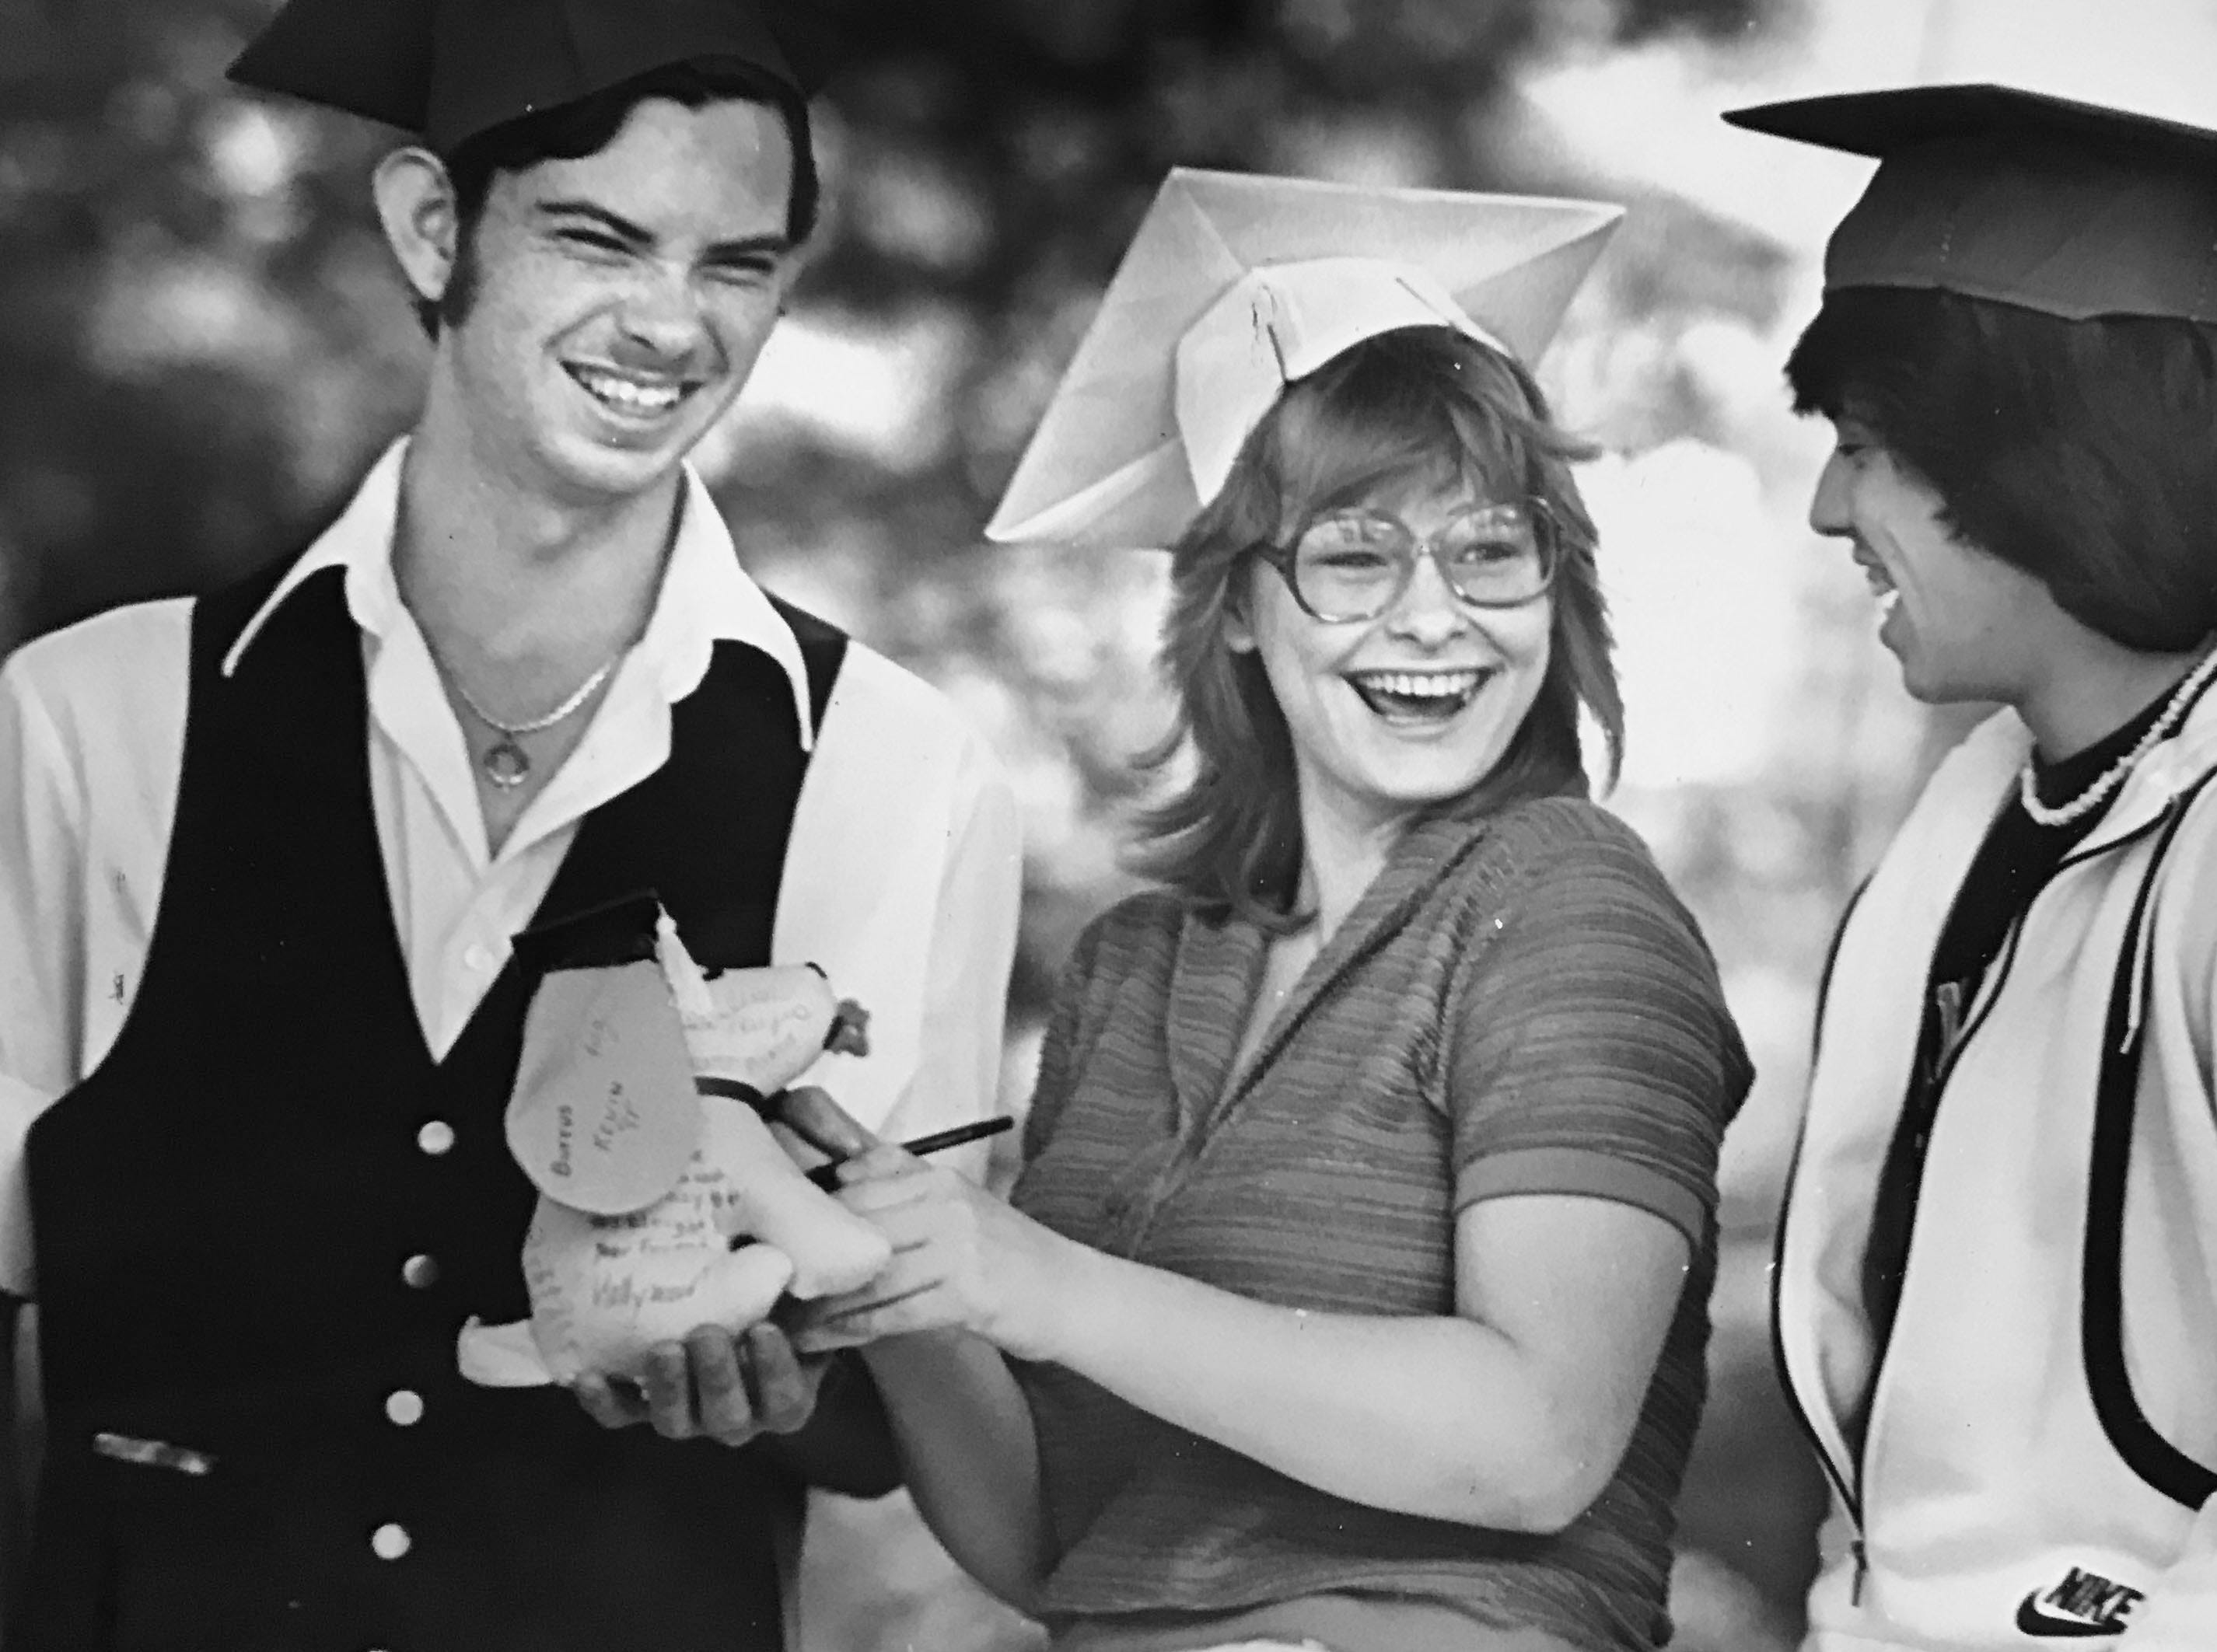 Mark Harmon, Theresa New and Doug Bunten (l to r) seniors at Arsenal Tech High School, sign an autograph dog as they wear their mortar boards for the 1981 graduation.